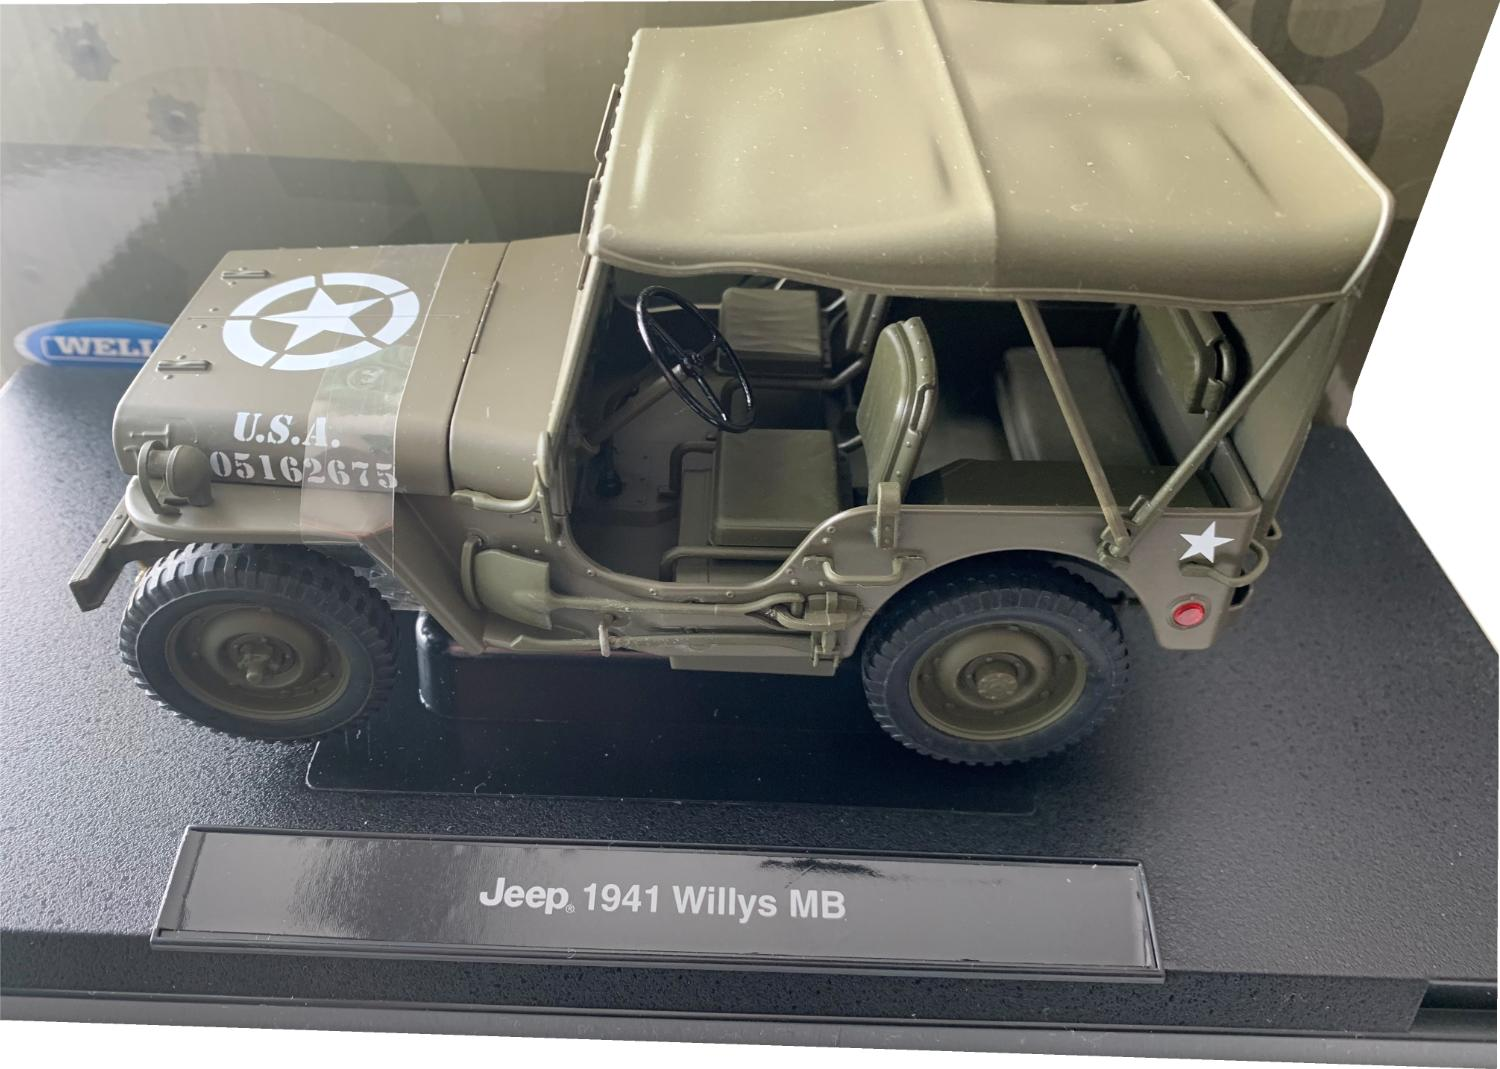 Willys MB USA Military Jeep Closed 1941 in green 1:18 scale model from Welly